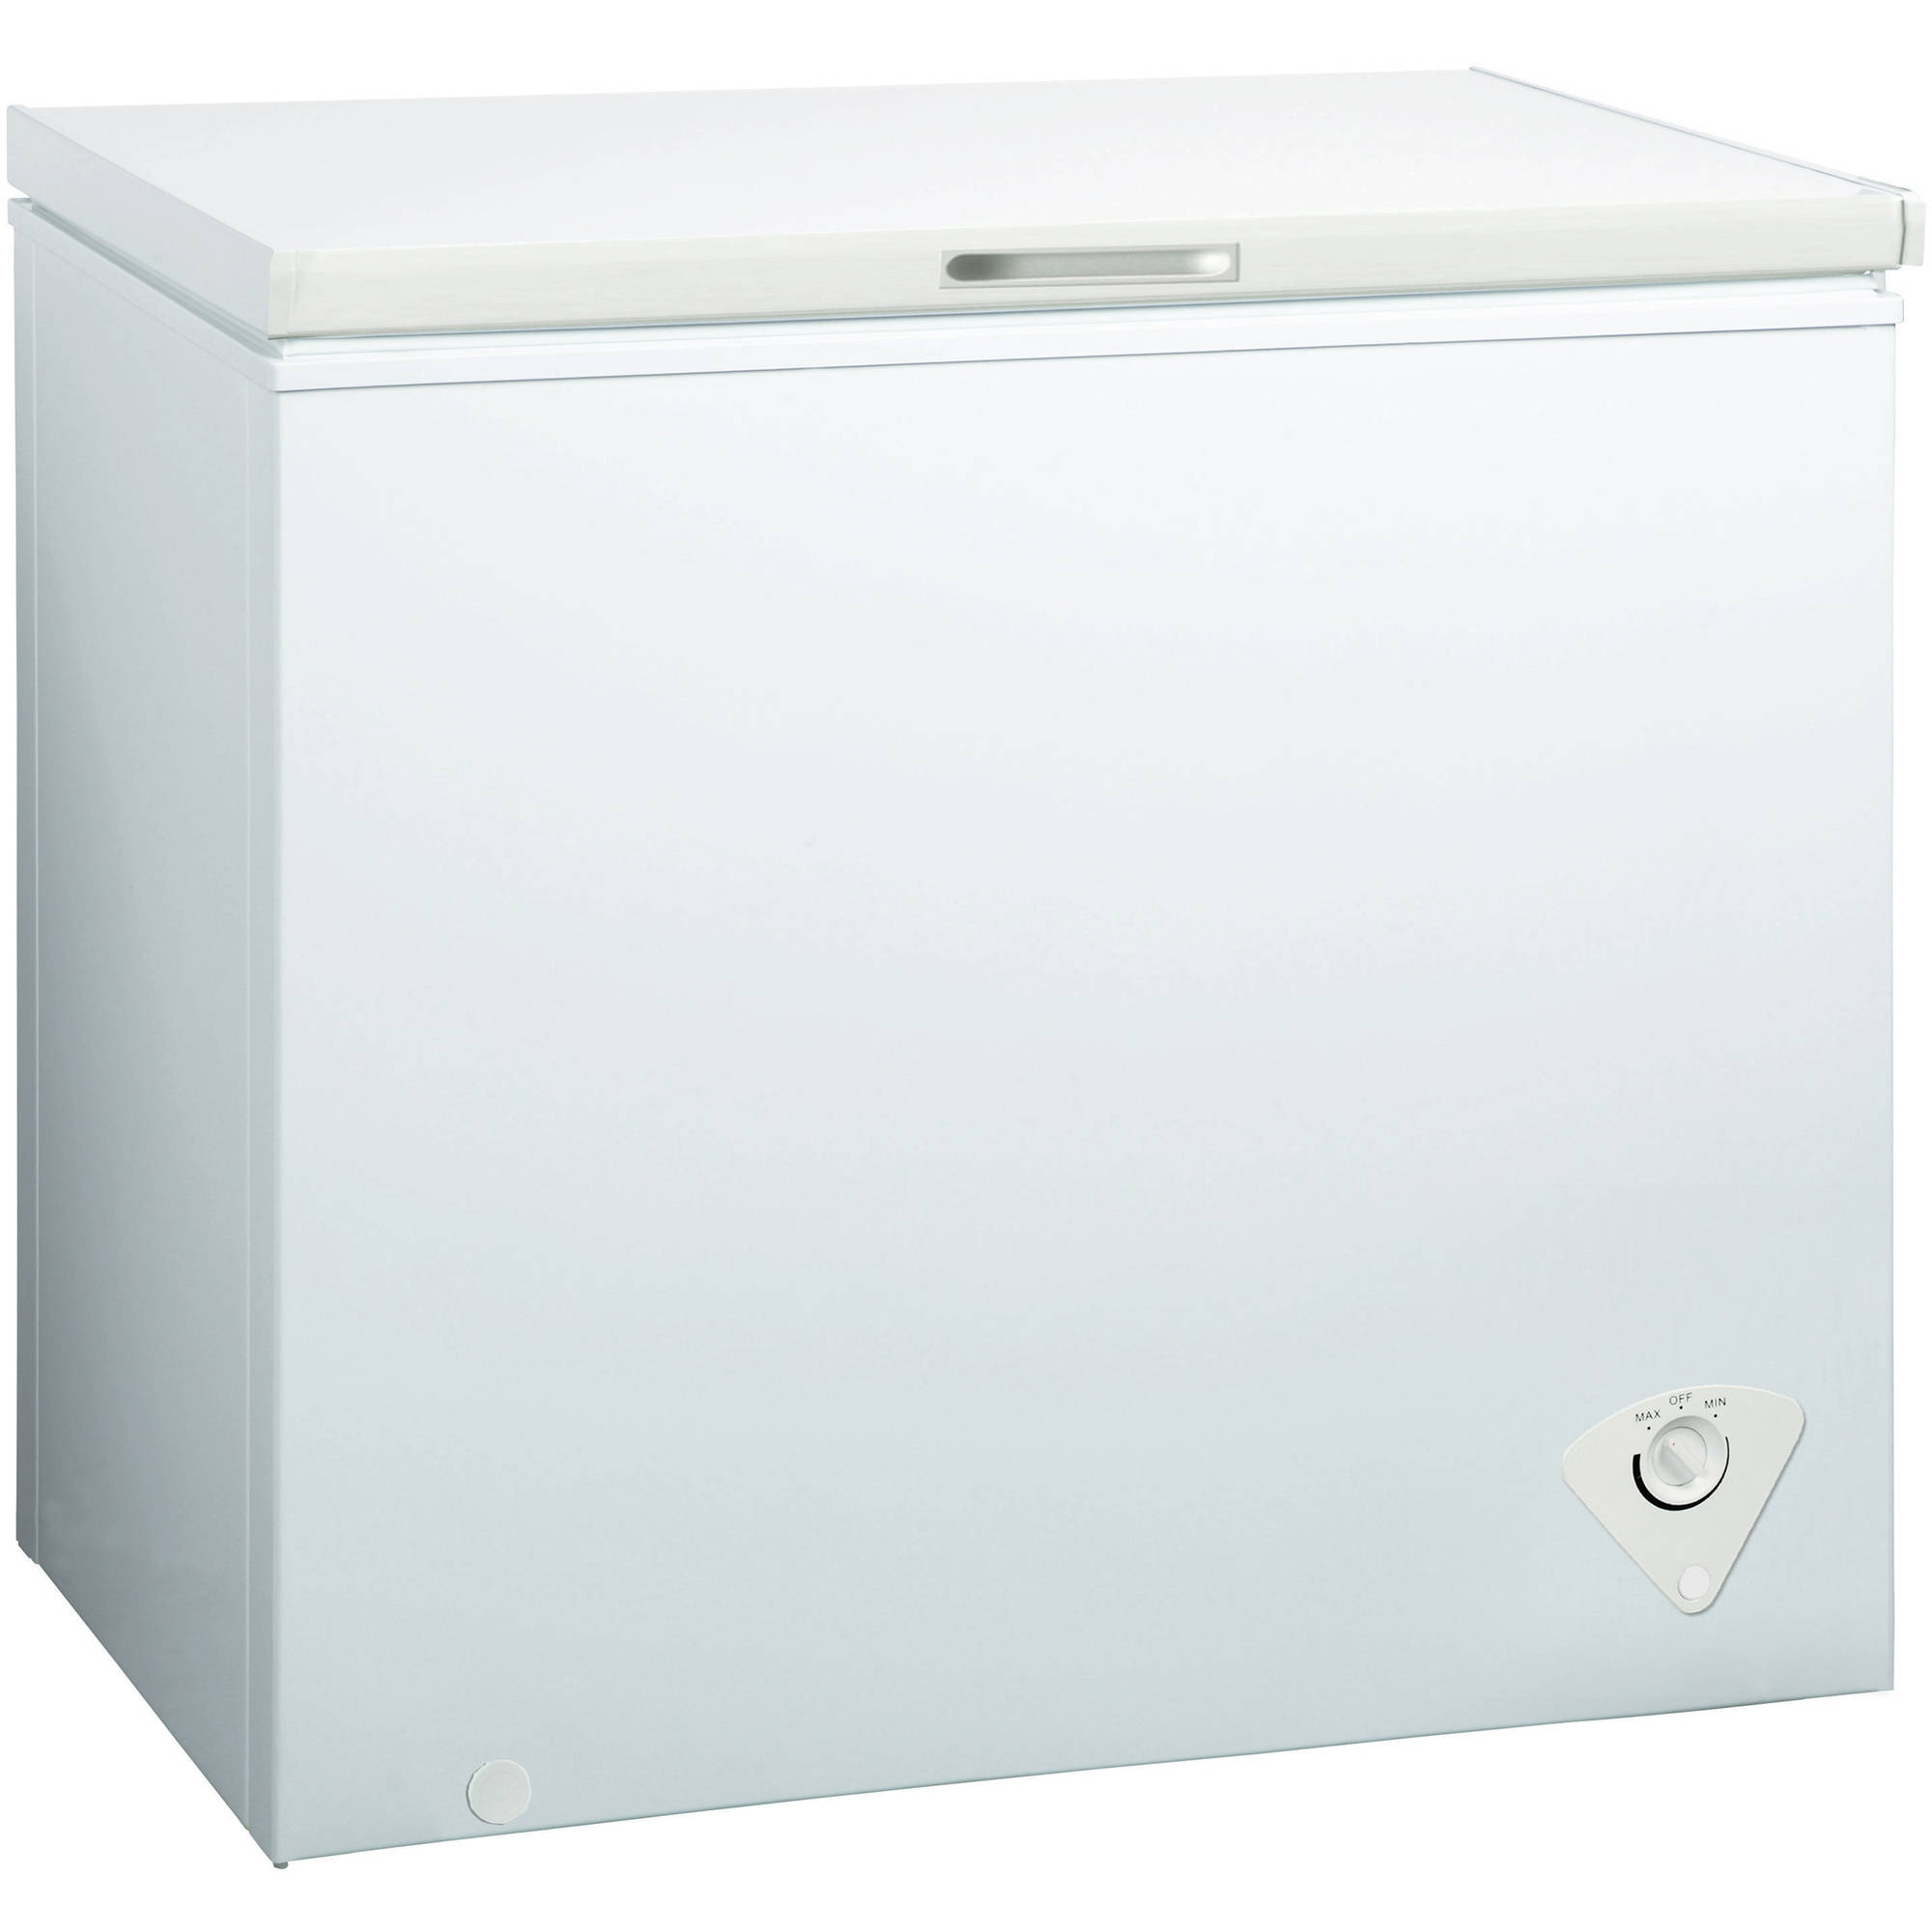 Equator-Midea 10.2 cu ft Energy efficient Chest Freezer, White